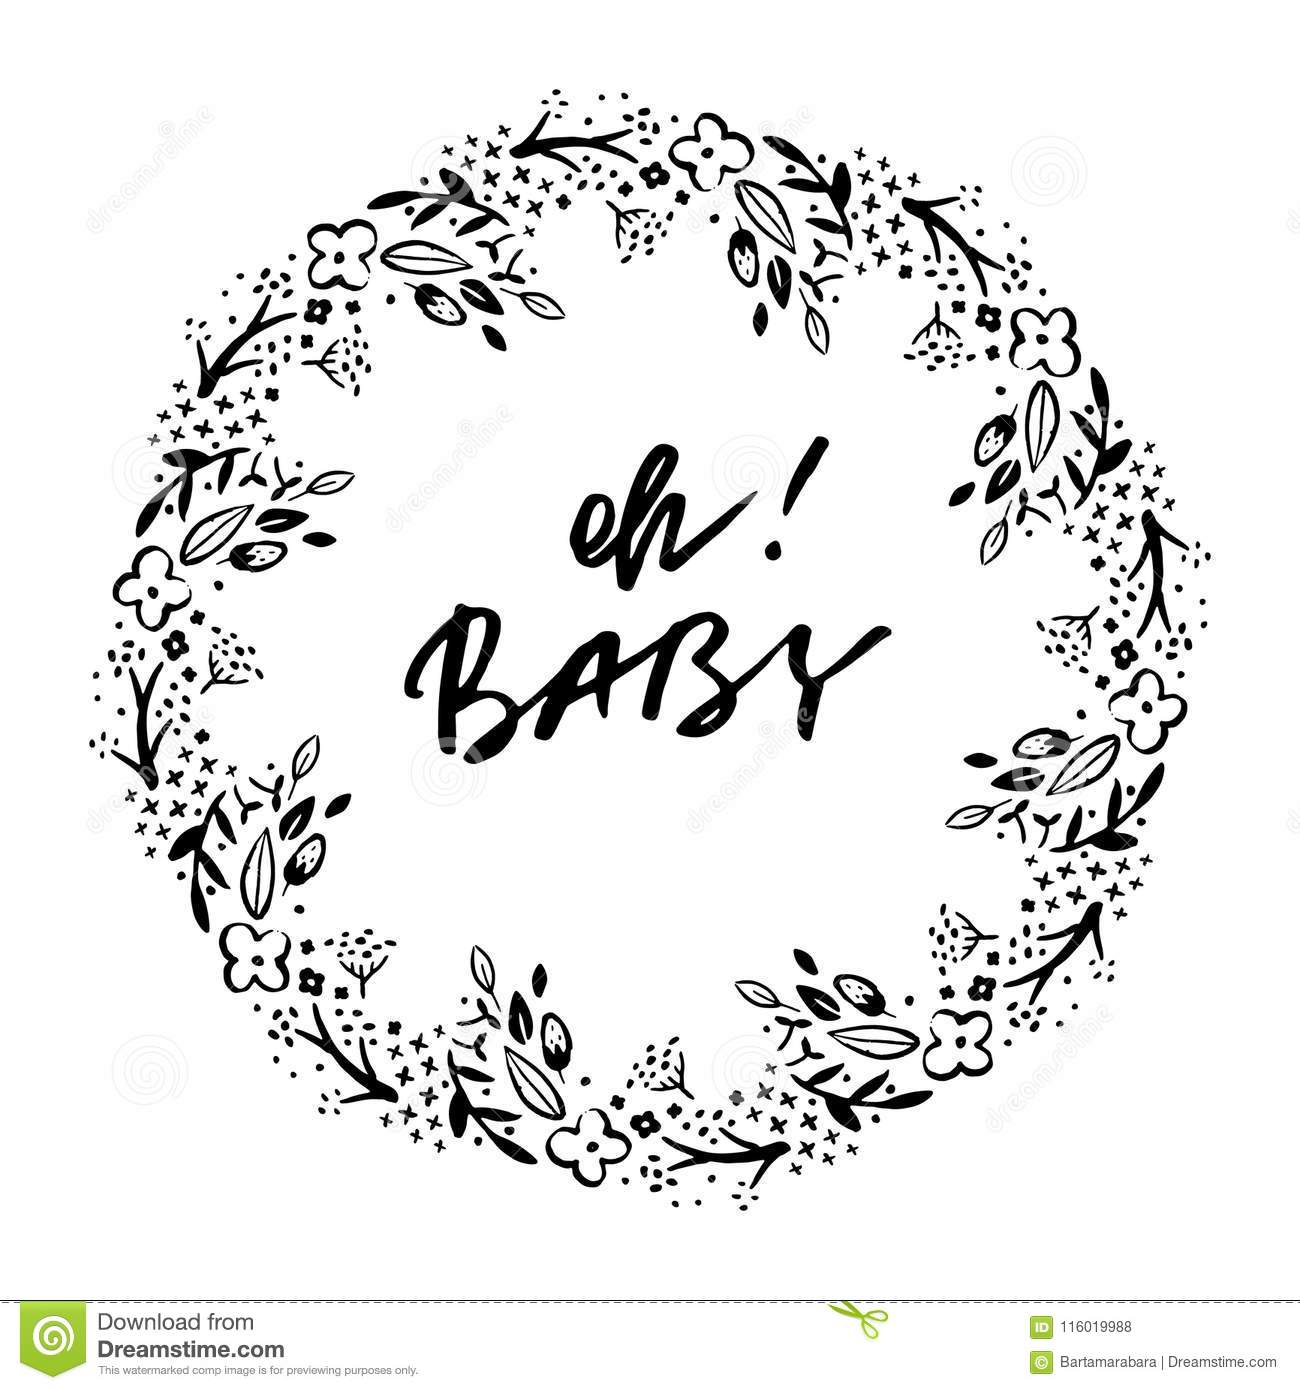 Oh baby phrase baby shower invitation card ink illustration oh baby phrase baby shower invitation card ink illustration modern brush calligraphy filmwisefo